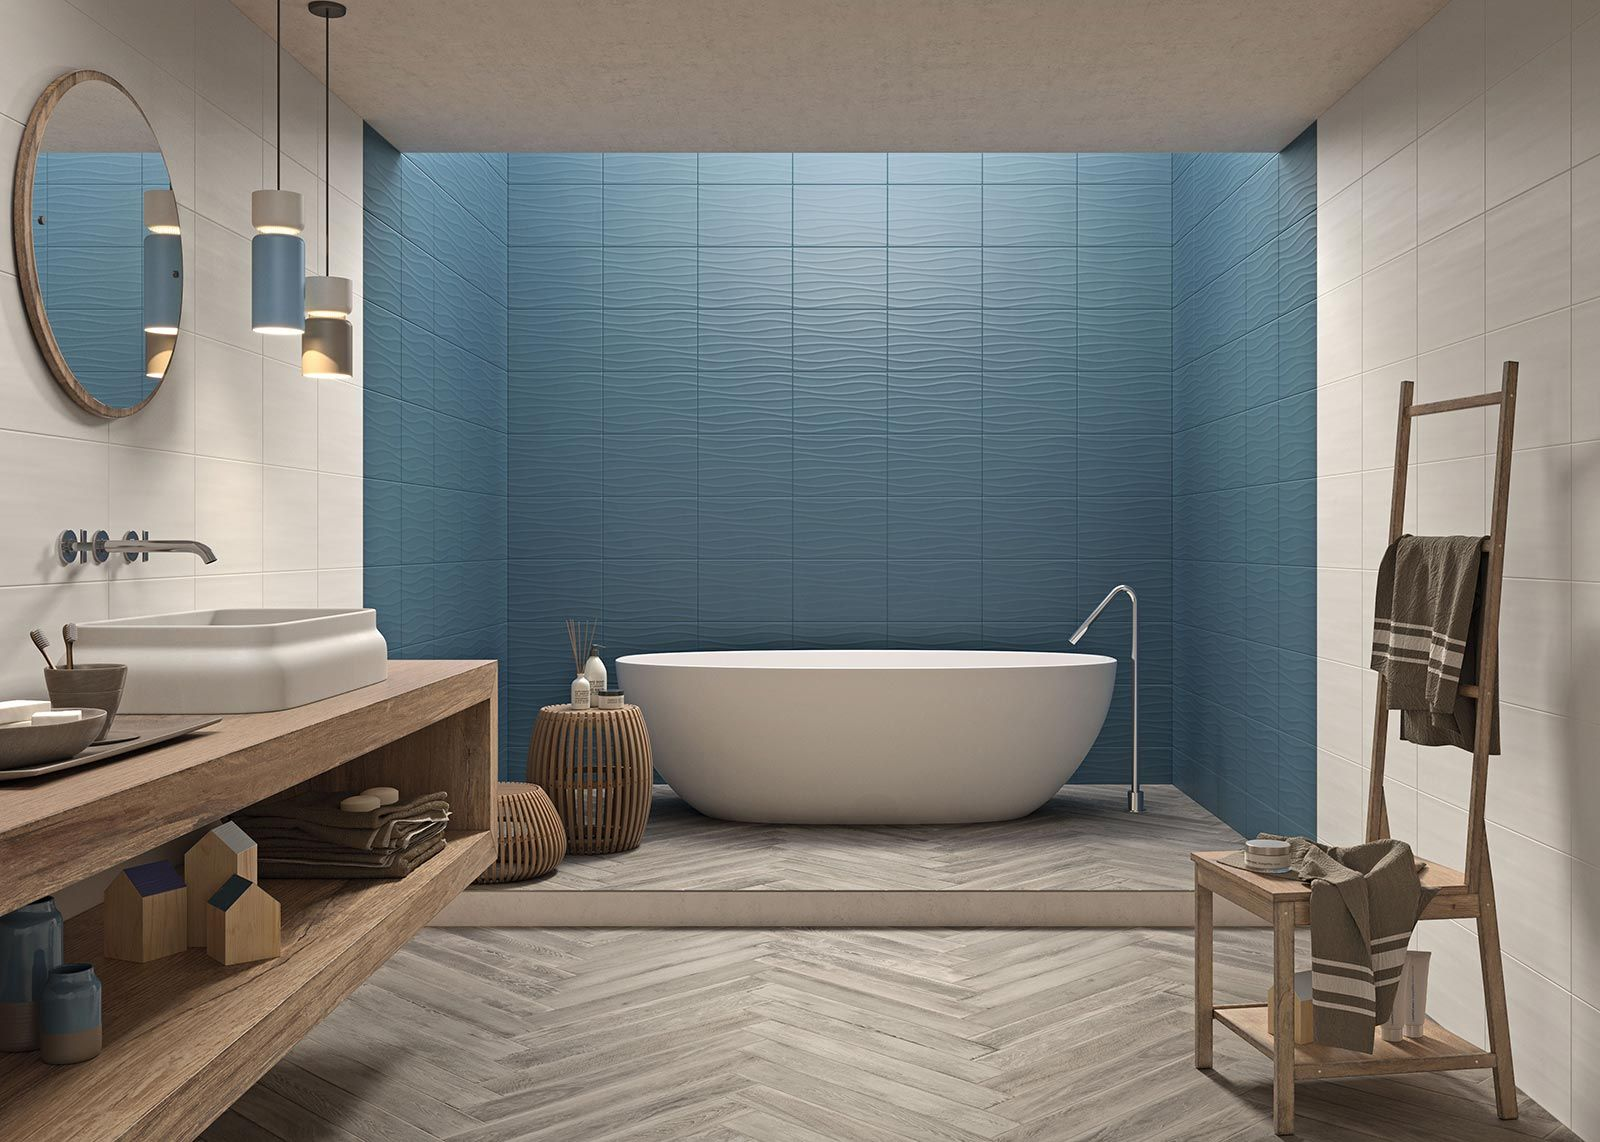 Bathroom tiles: ceramic and porcelain stoneware - Marazzi 7438  Baderomsfliser  Pinterest ...